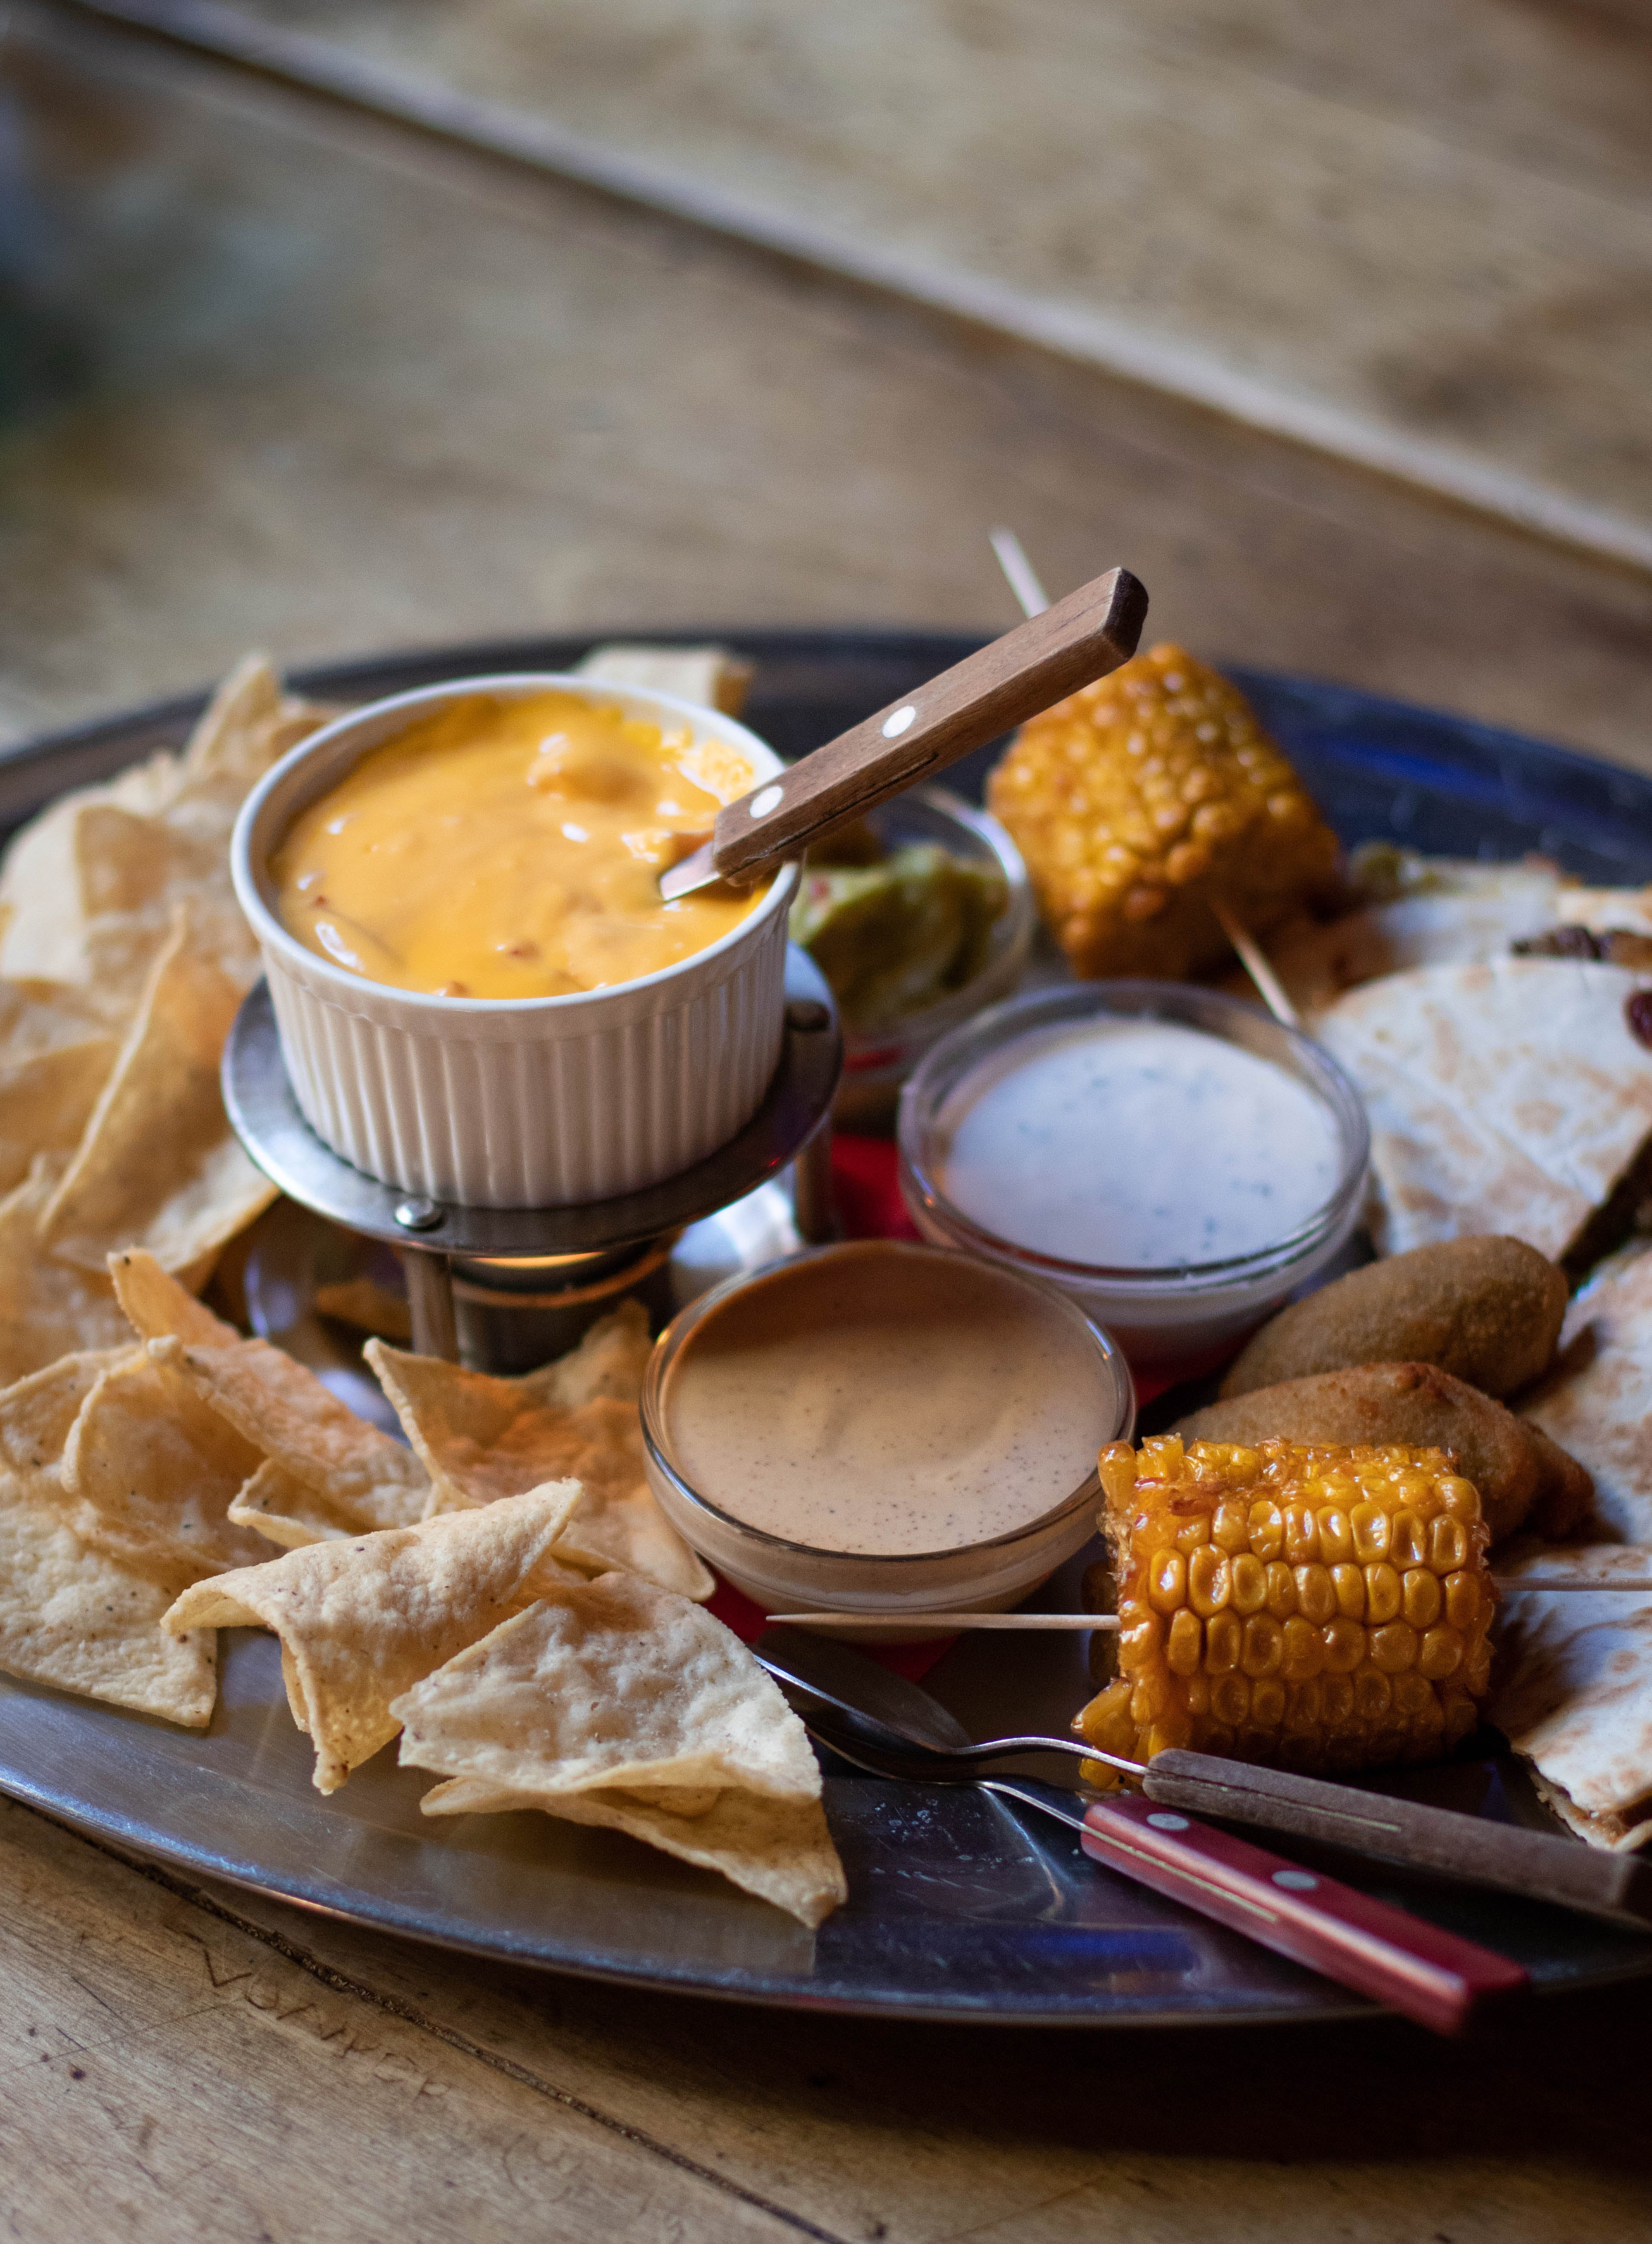 Corn Cub And Sauces On Plate